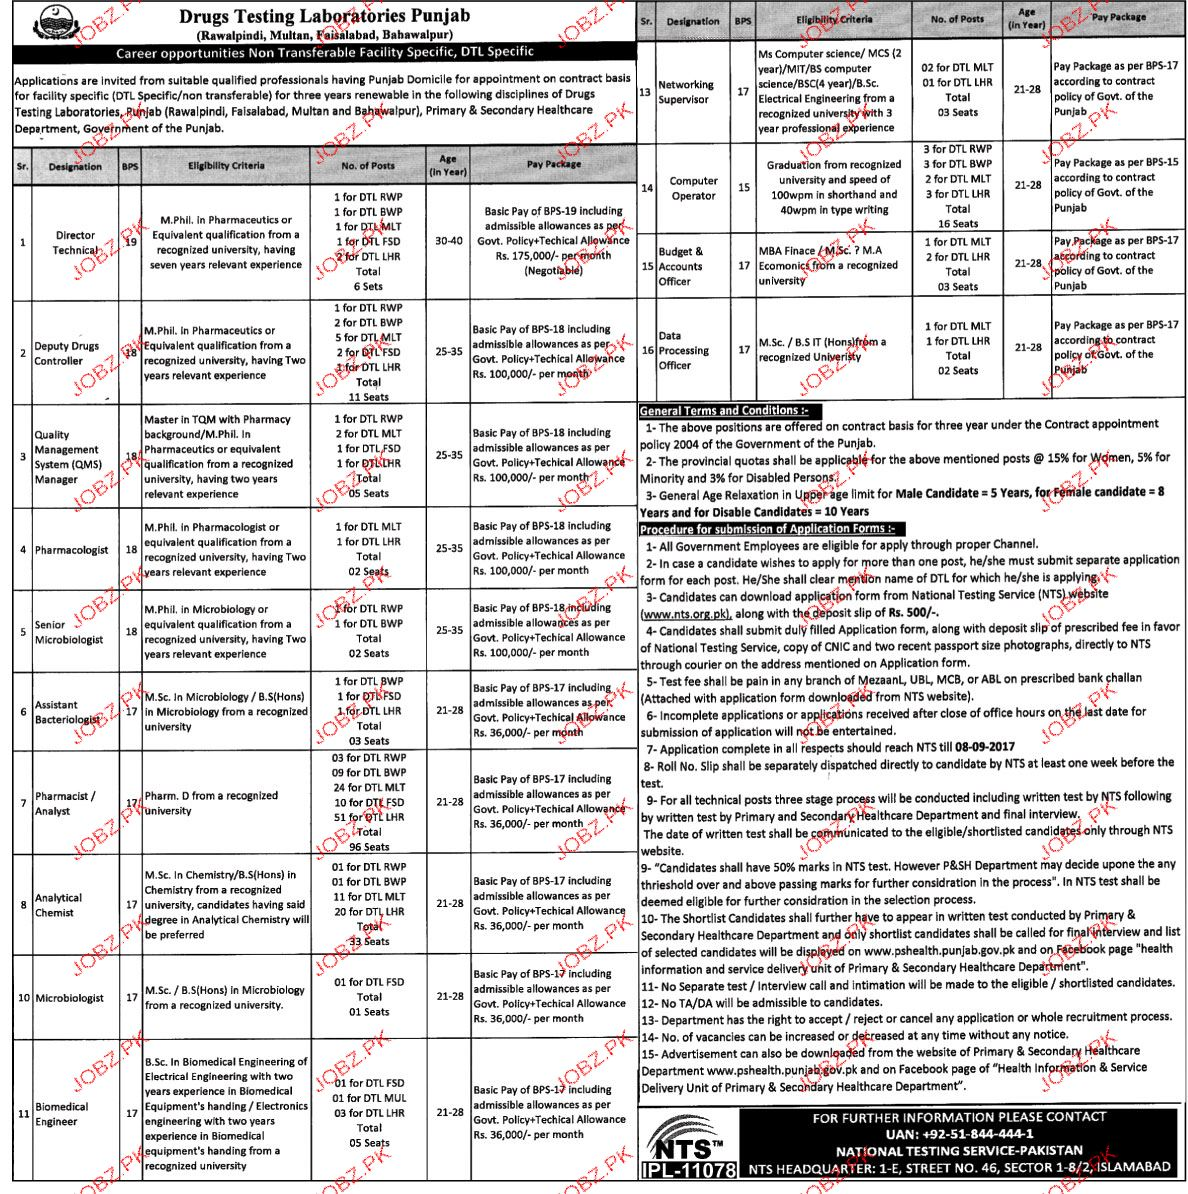 Drugs Testing Laboratories Punjab NTS Jobs